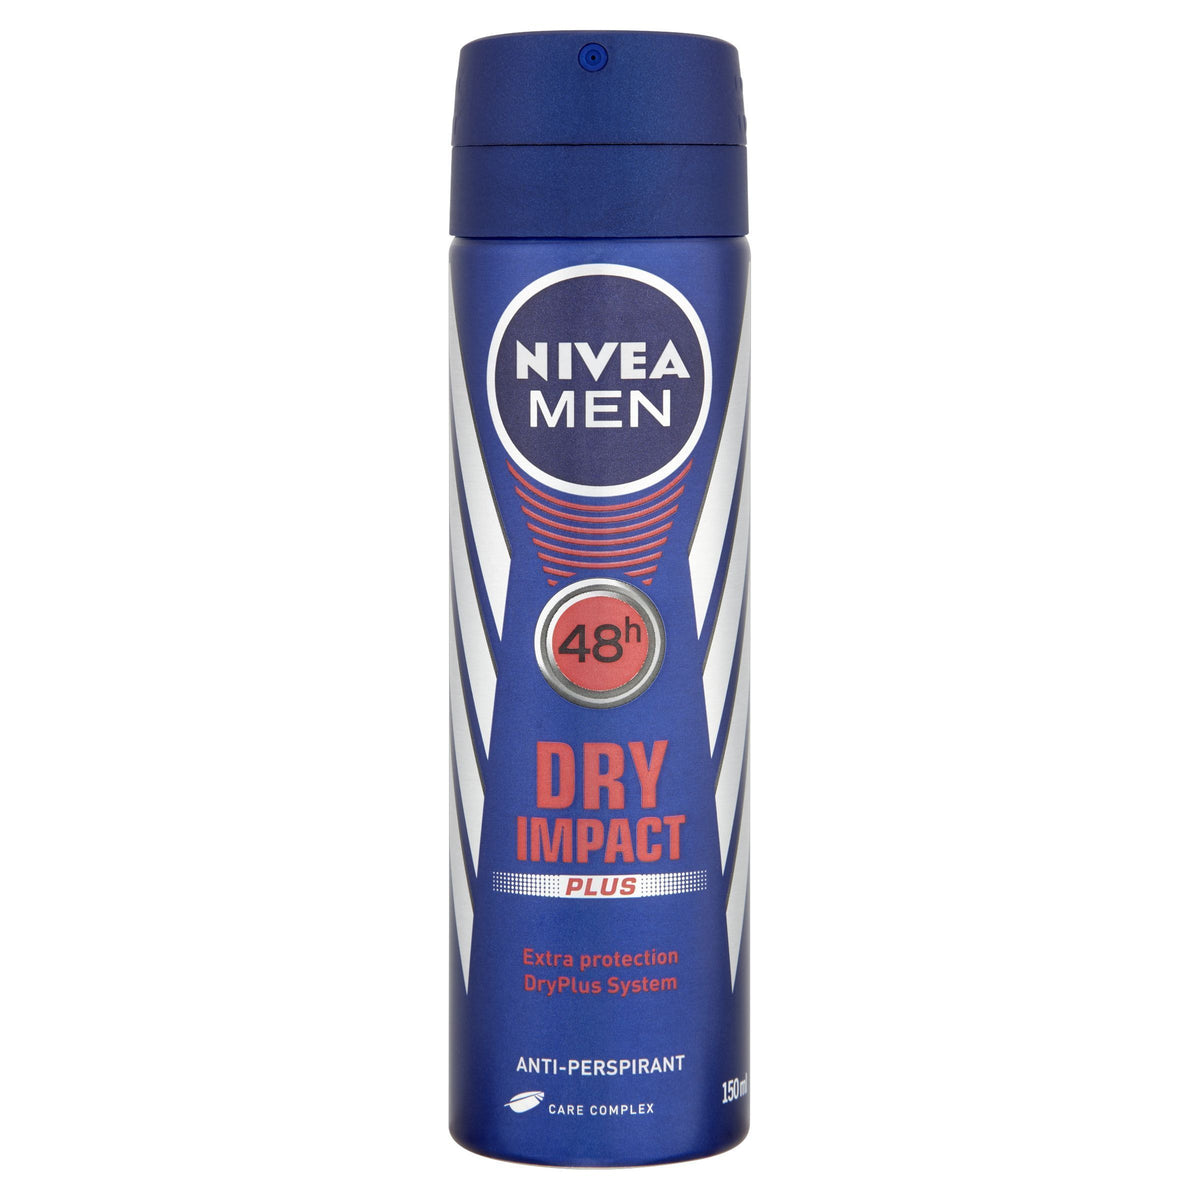 Nivea Men Dry Impact Plus 48h Anti-Perspirant 150ml - Pack of 6